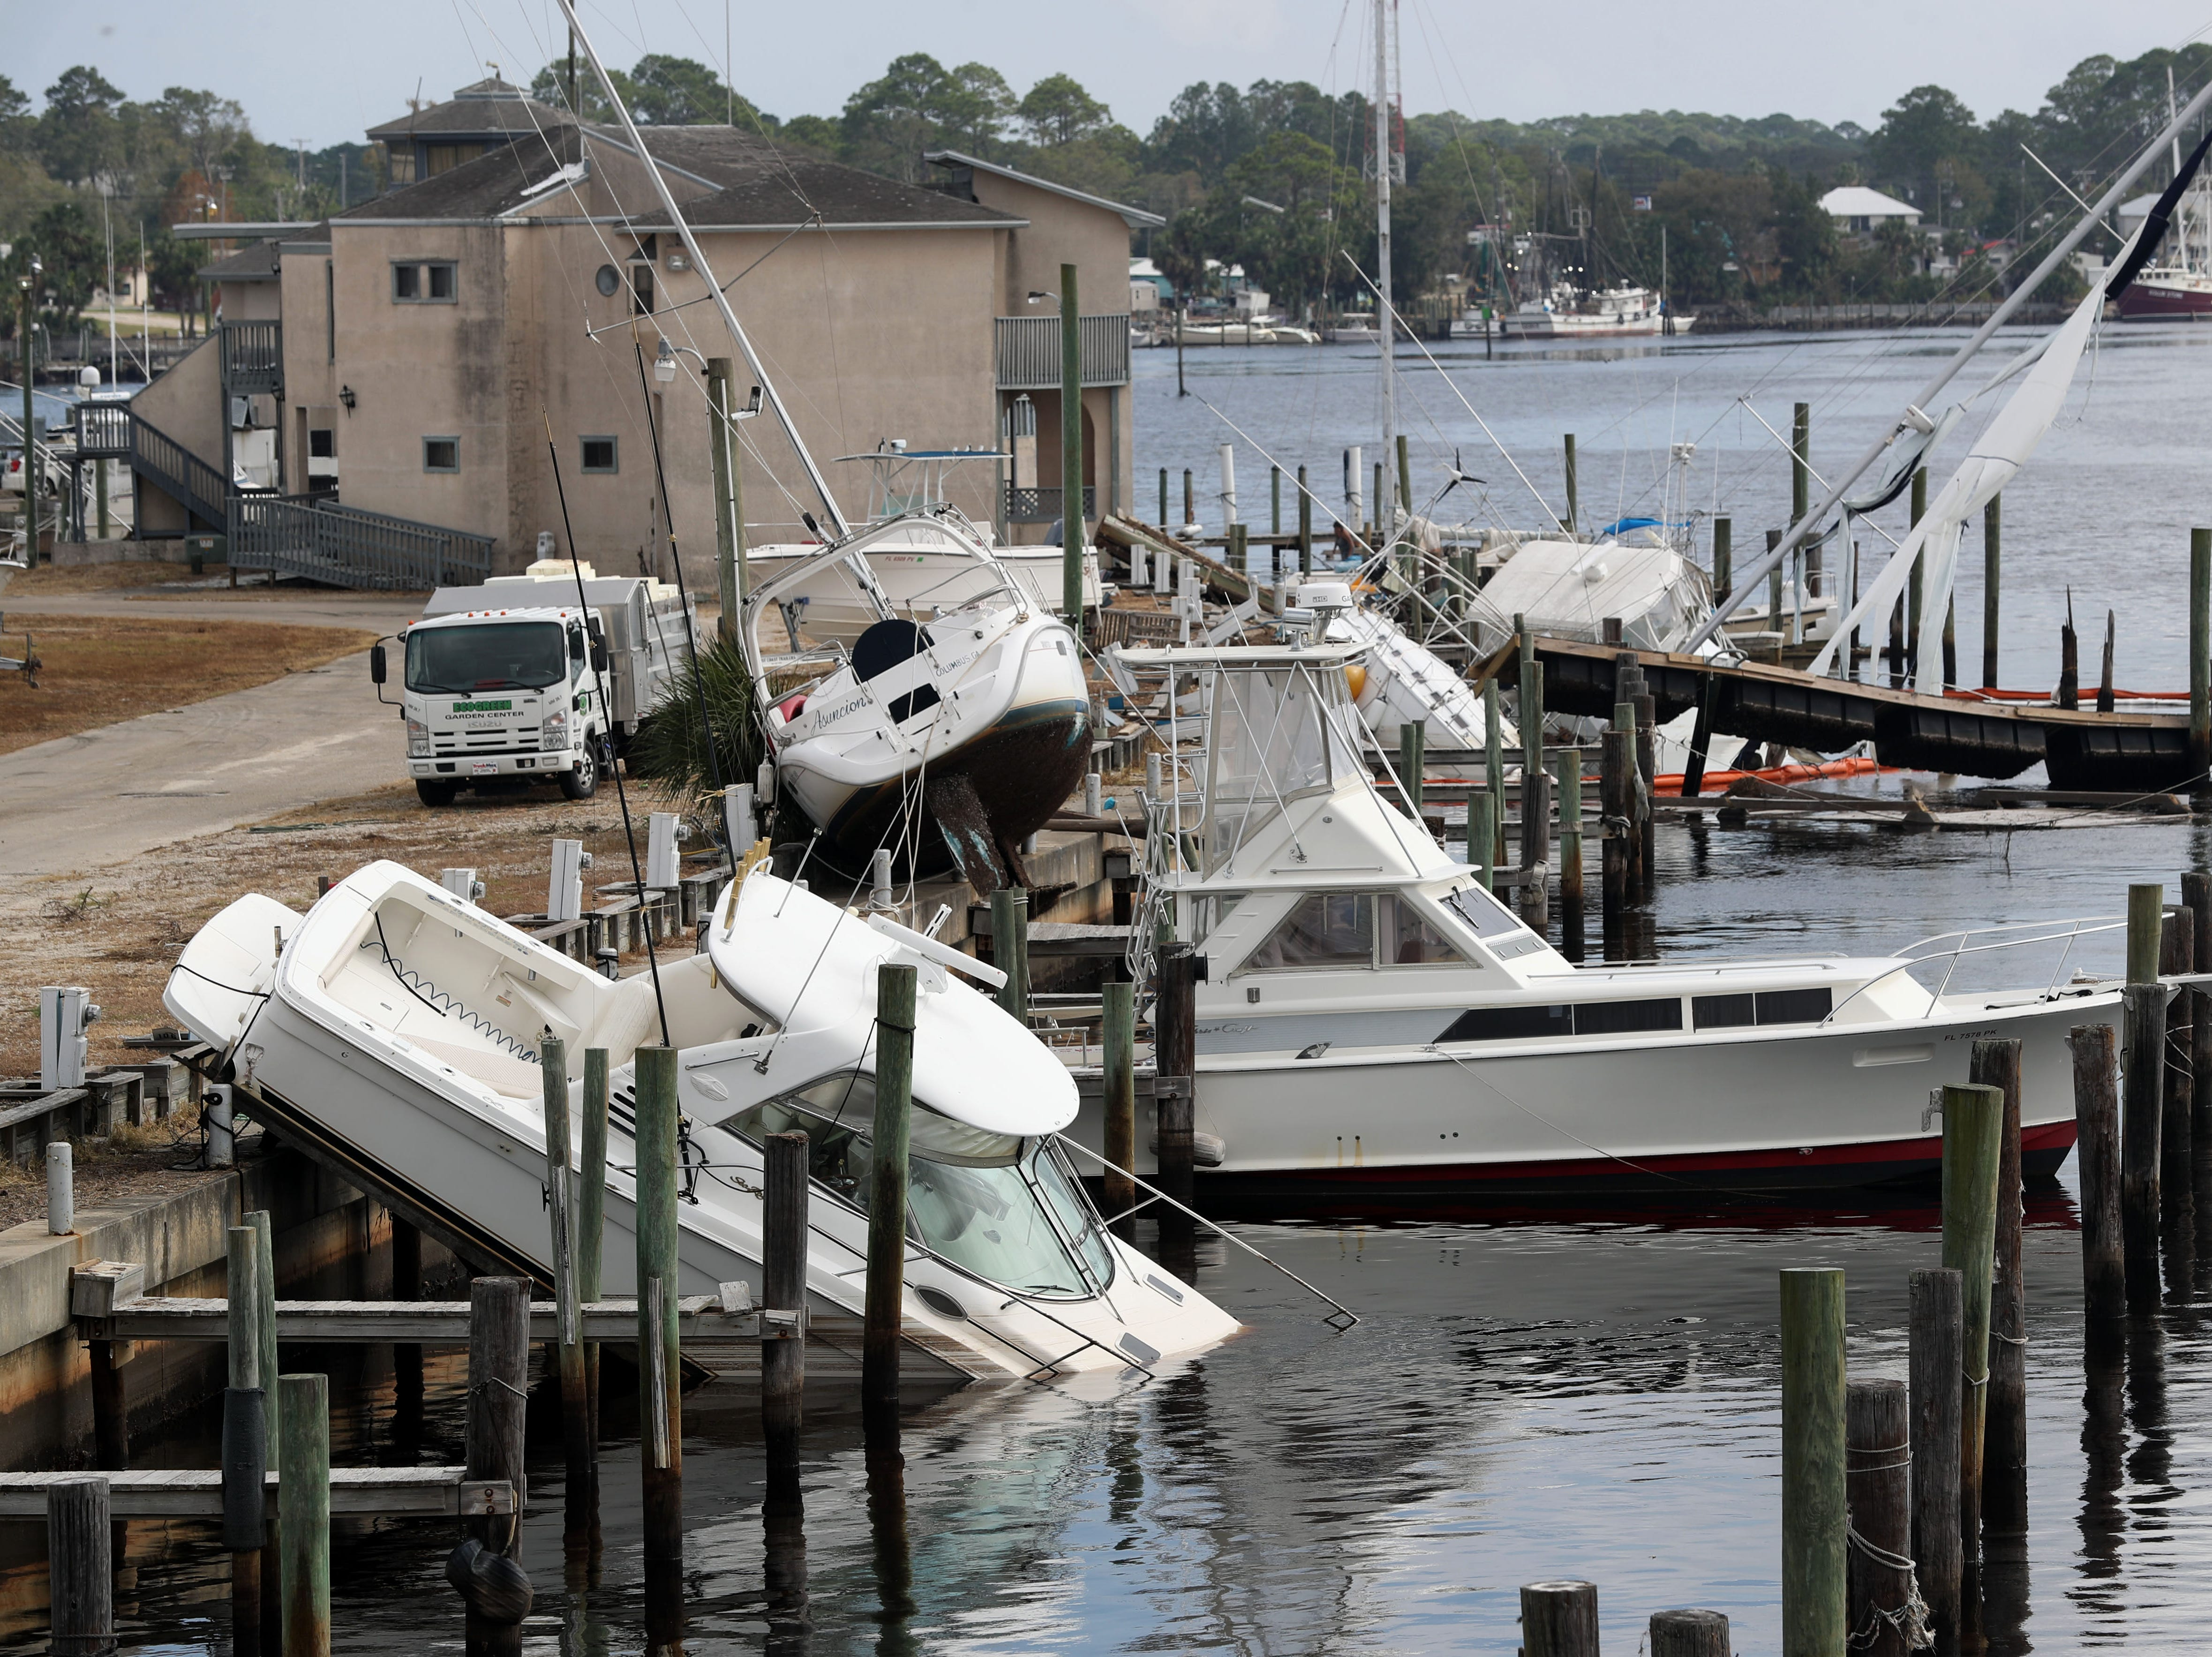 Boats at the Carrabelle marina toppled over and partially submerged after Hurricane Michael ripped through the panhandle on Wednesday, Oct. 10, 2018.